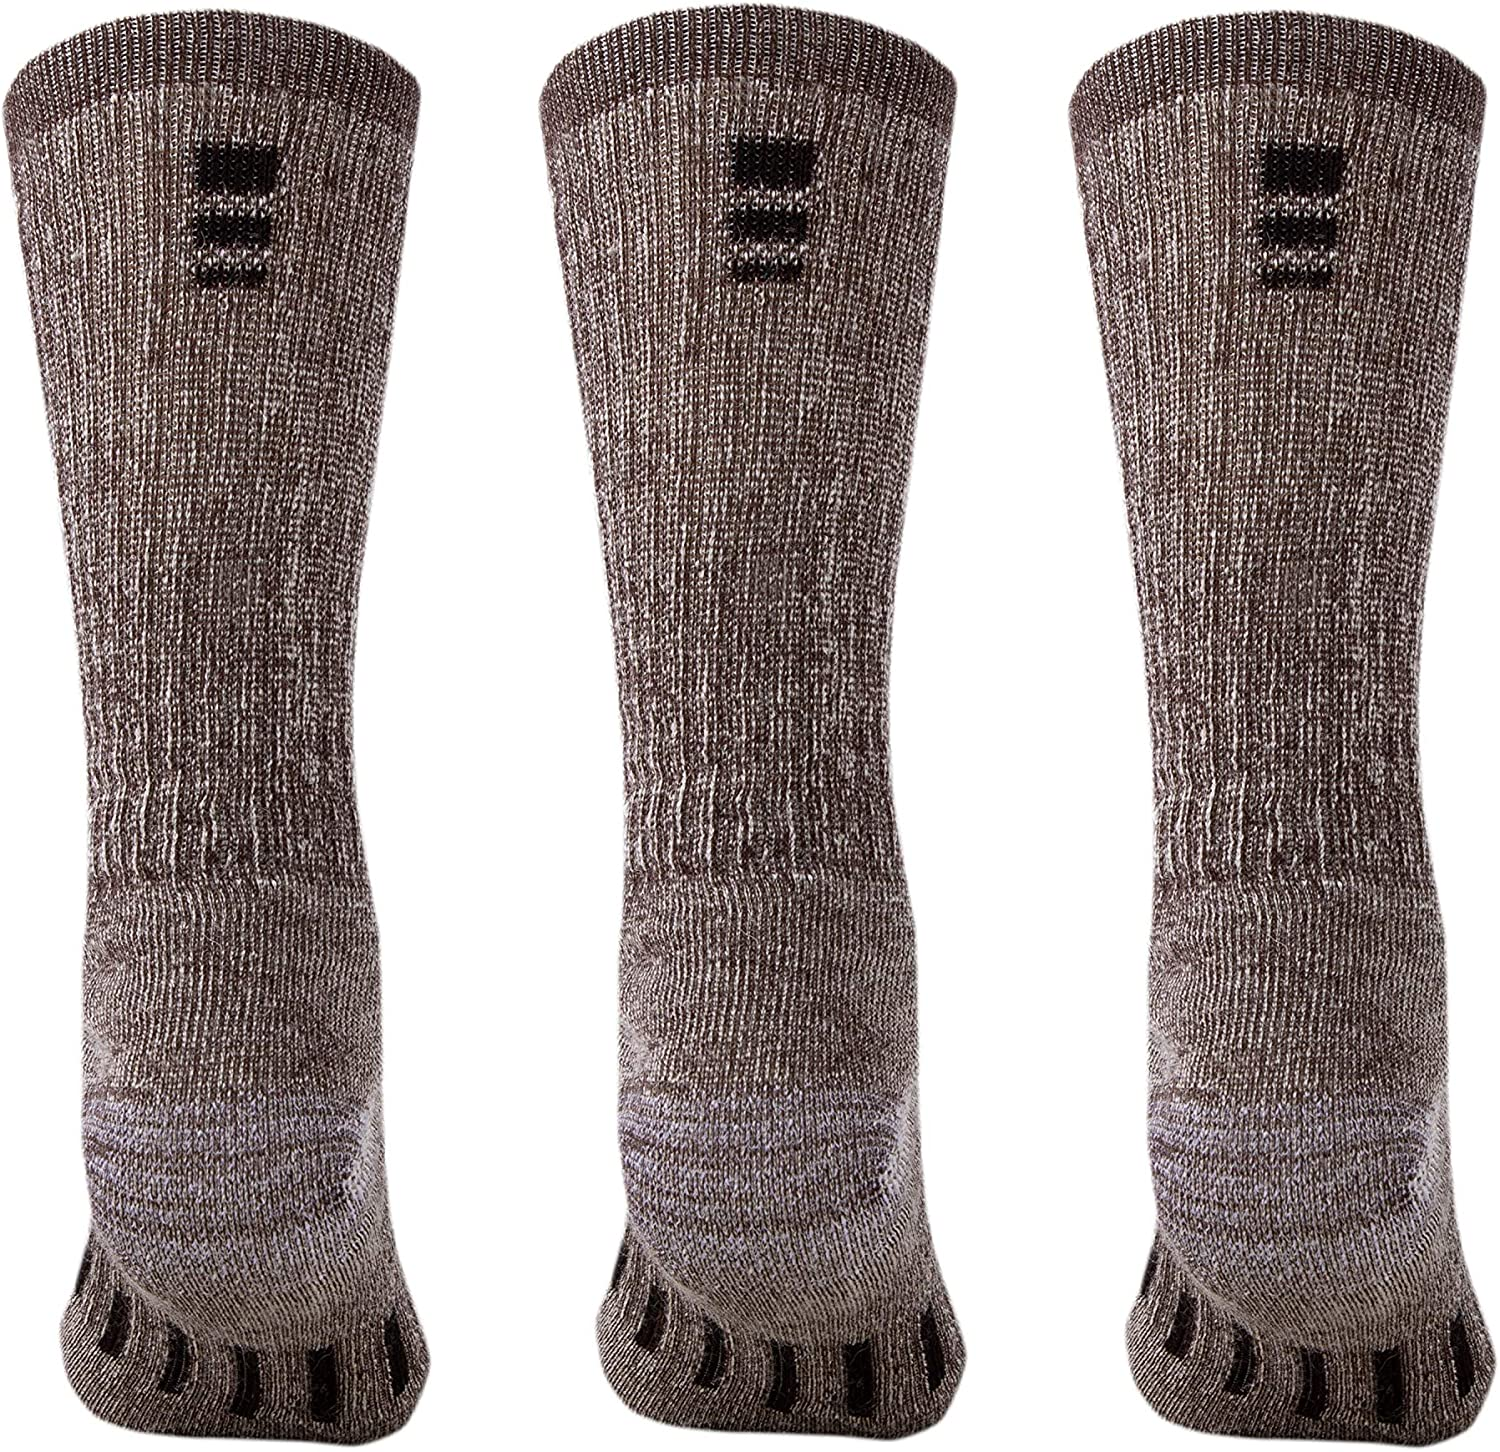 3 Pairs Midweight Cushioned Warm n Breathable MERIWOOL Merino Wool Hiking Socks for Men and Women